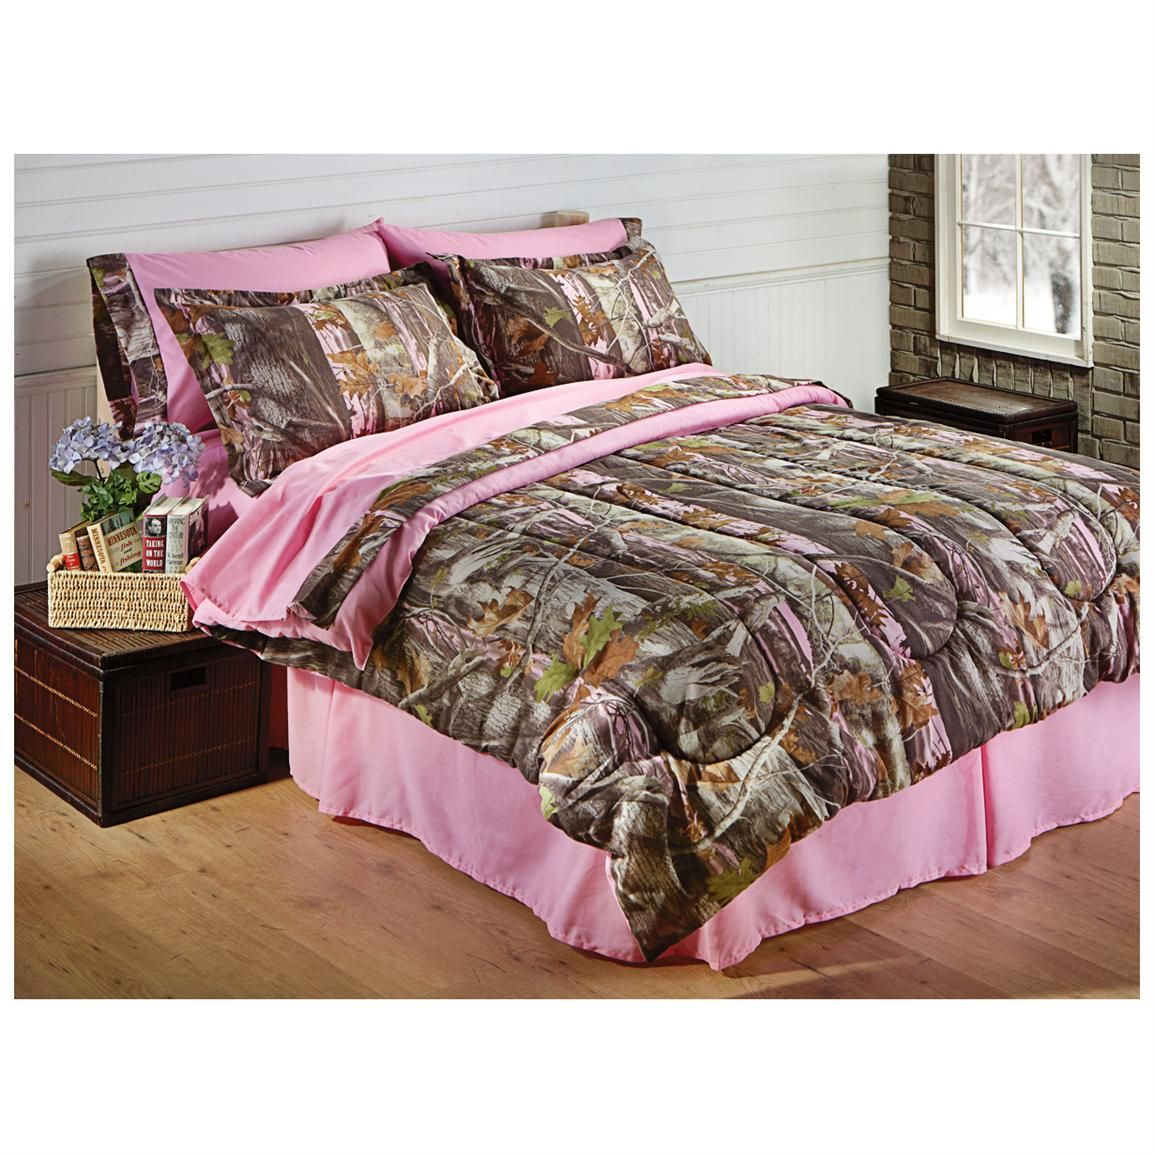 Castlecreek Next Pink Bed Set